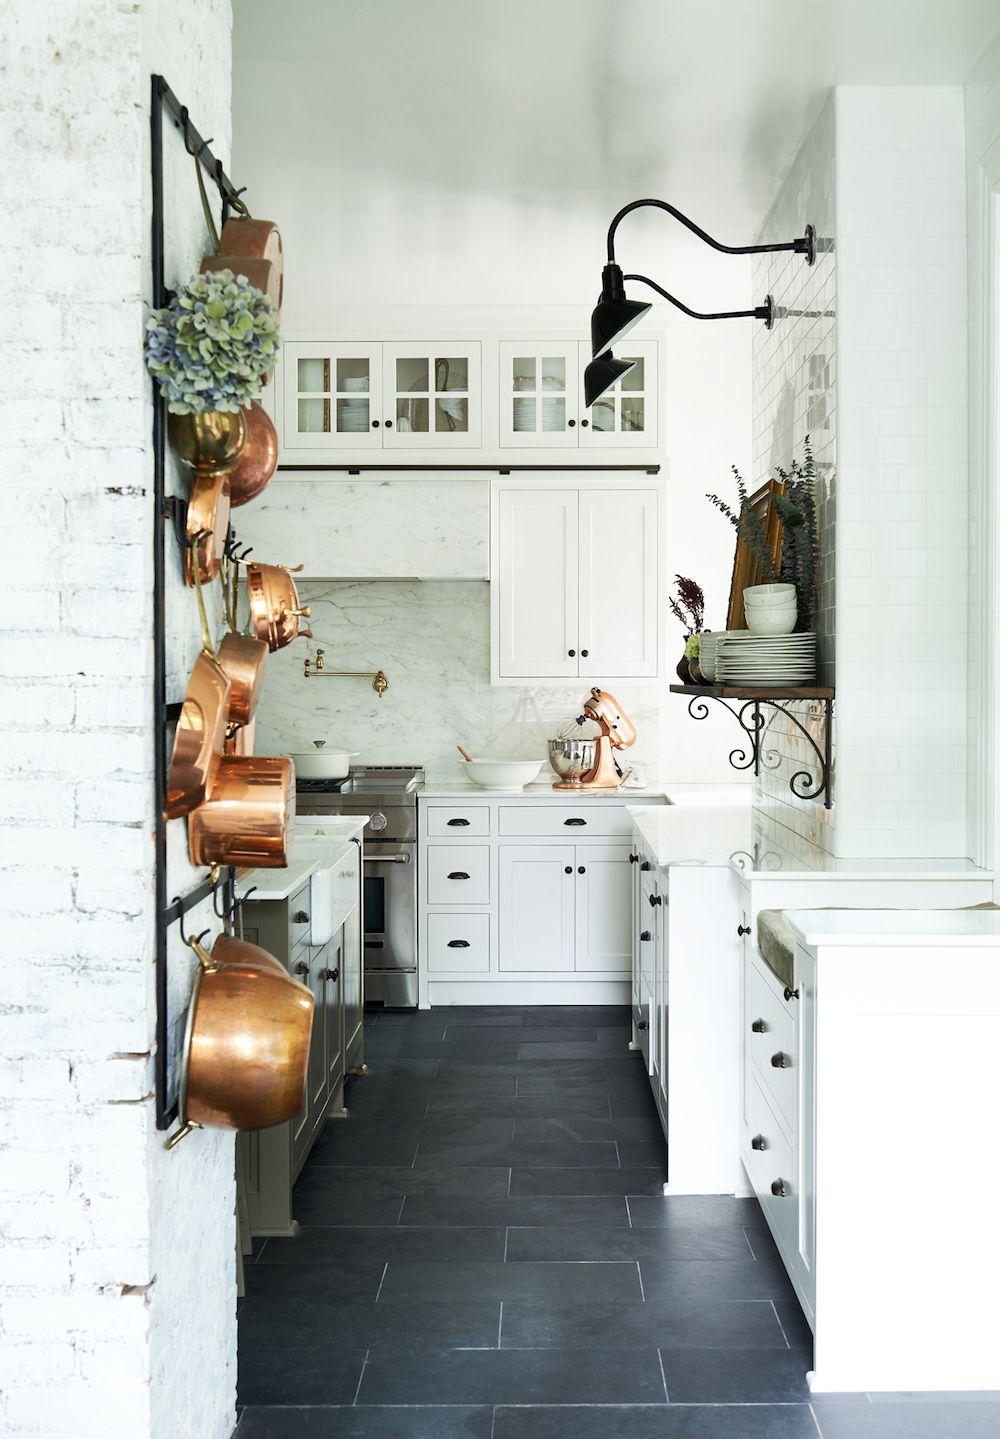 DREAM kitchen! Love the white marble with brick, black and copper ...